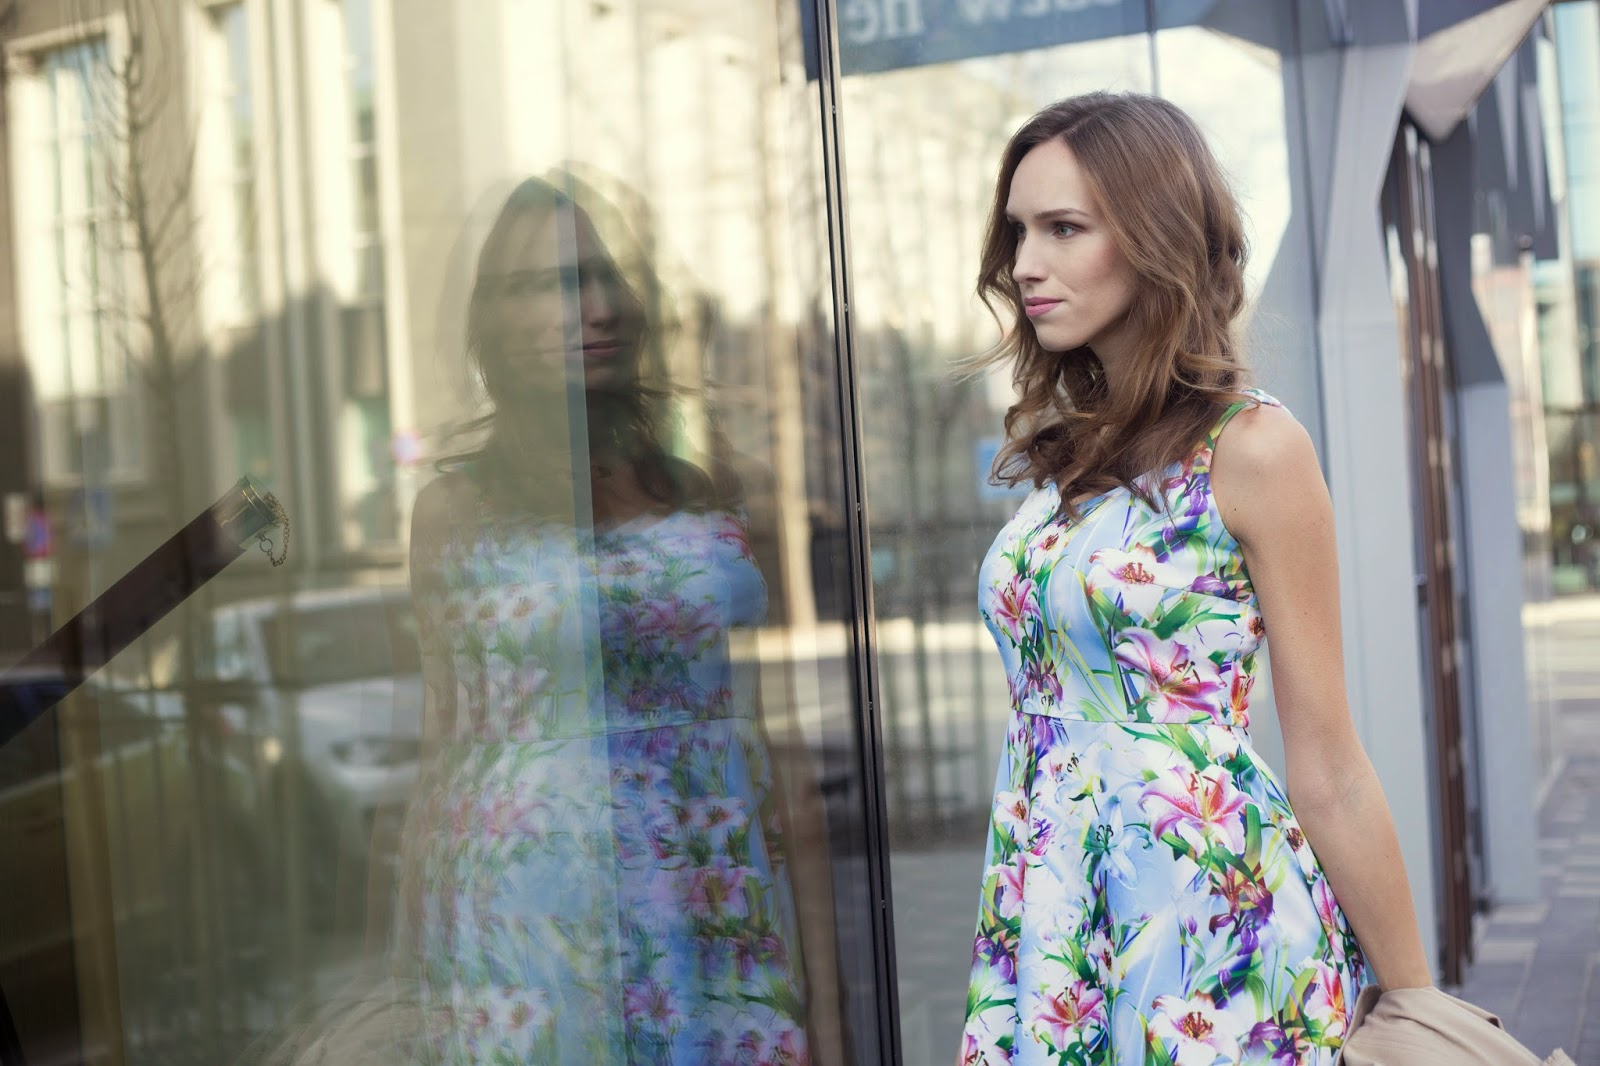 perit-muuga-estonian-fashion-design-floral-dress